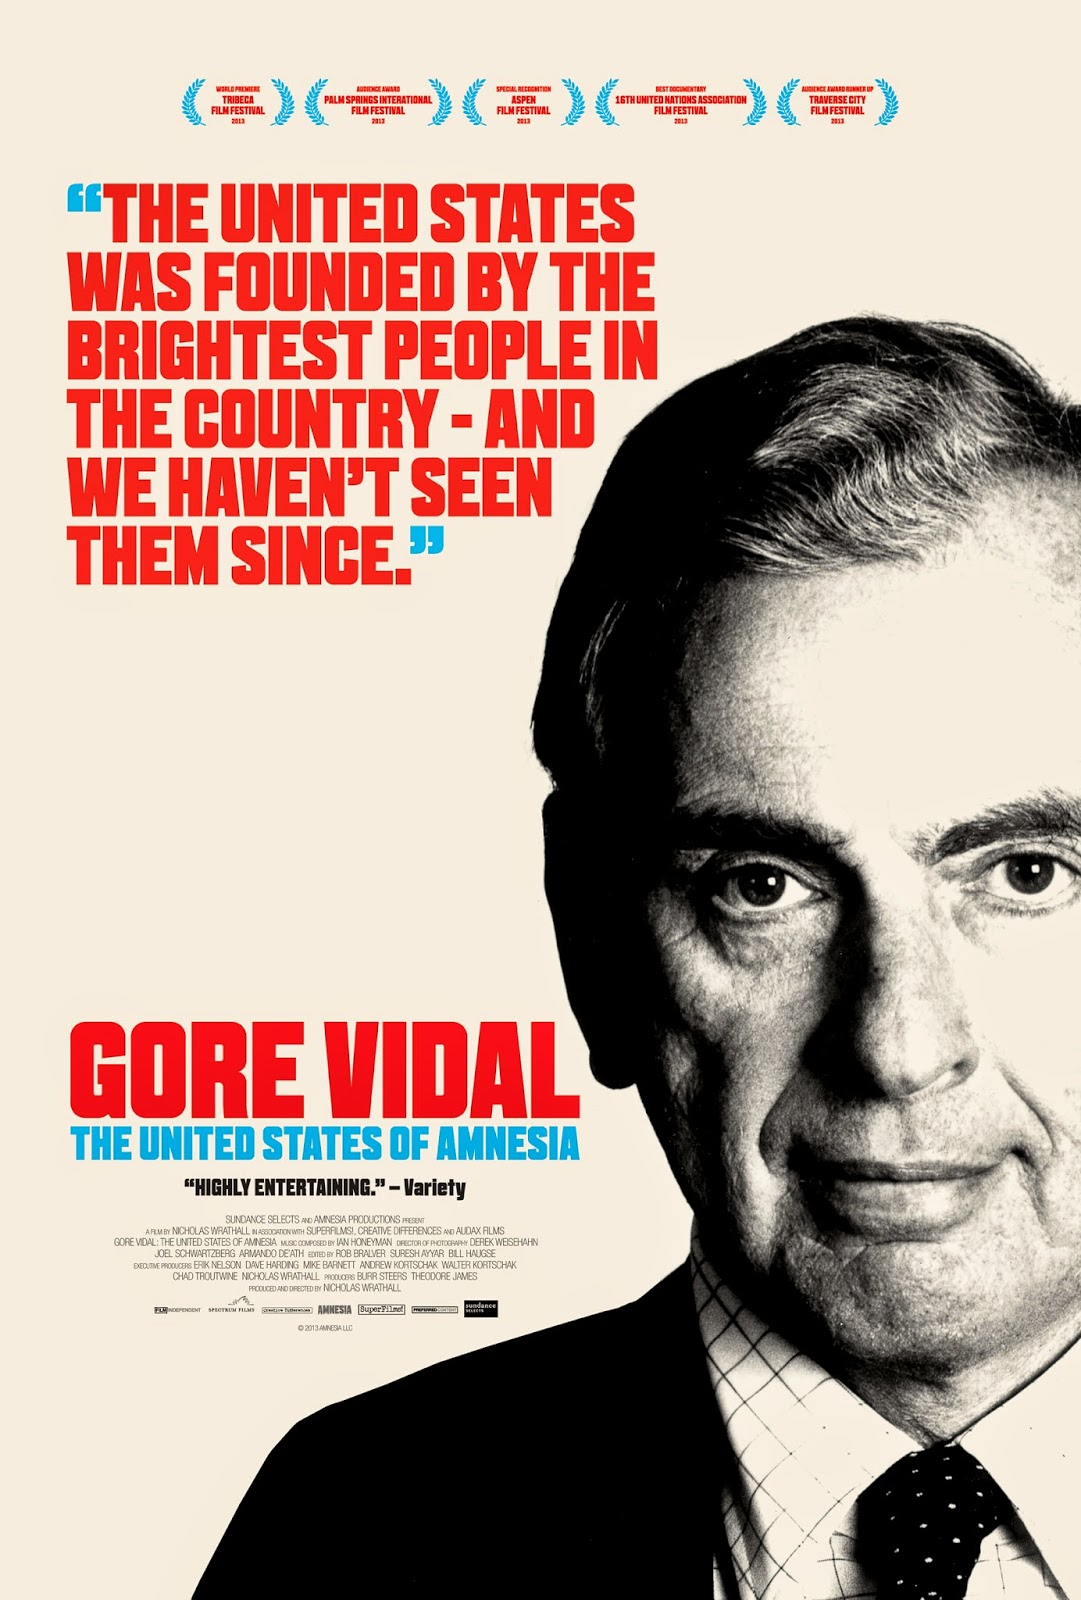 the culture cave 2015 gore vidal the united states of amnesia 2013